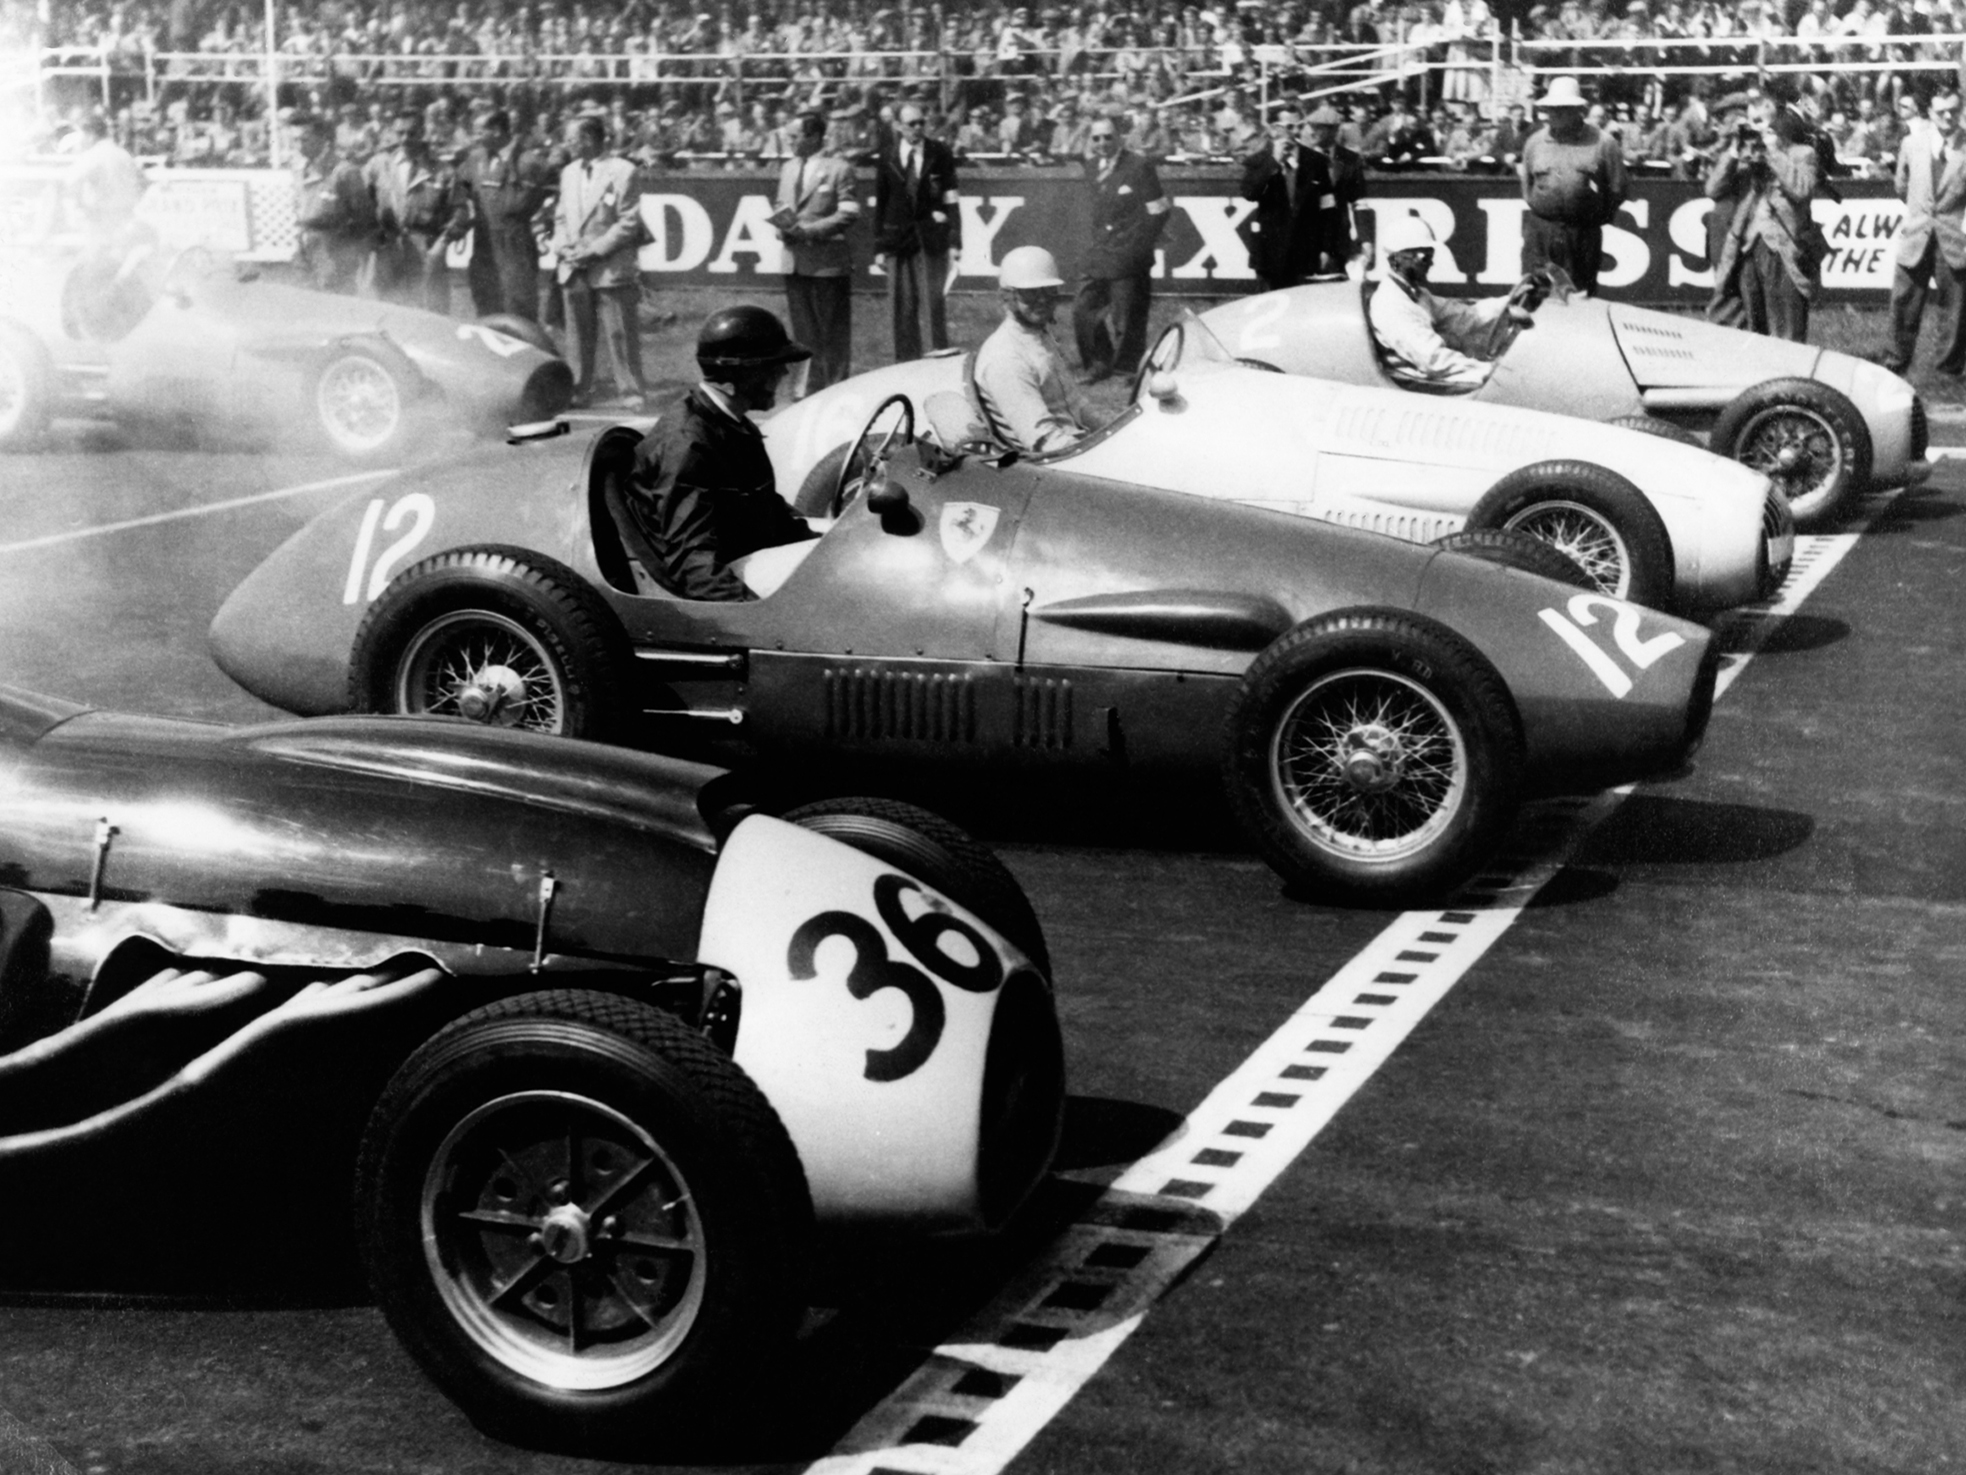 Black and white photograph of vintage cars